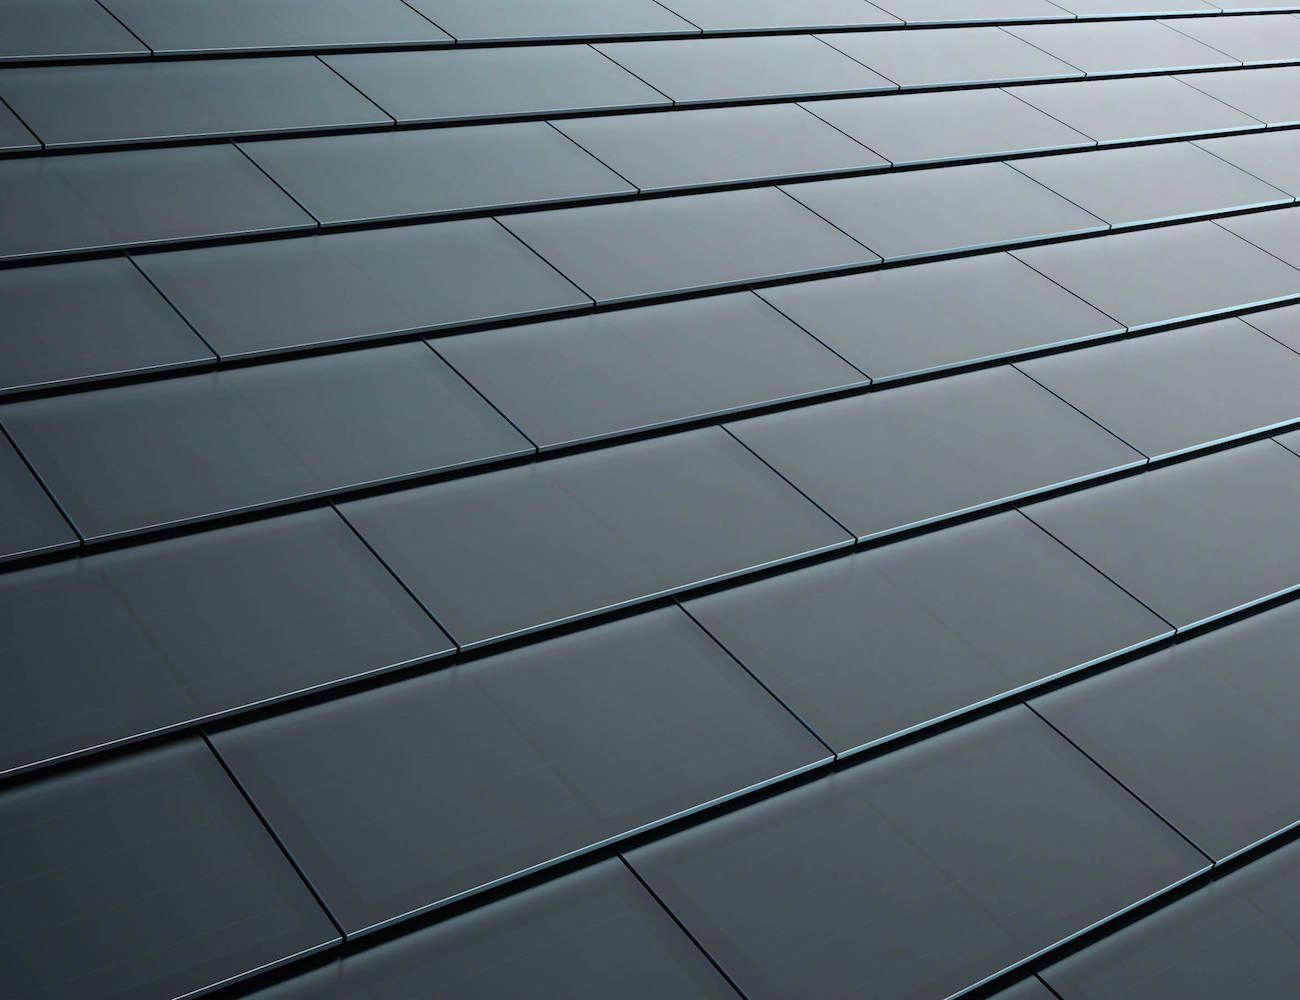 Tesla Solar Power Roof Tiles Made from quartz glass, these